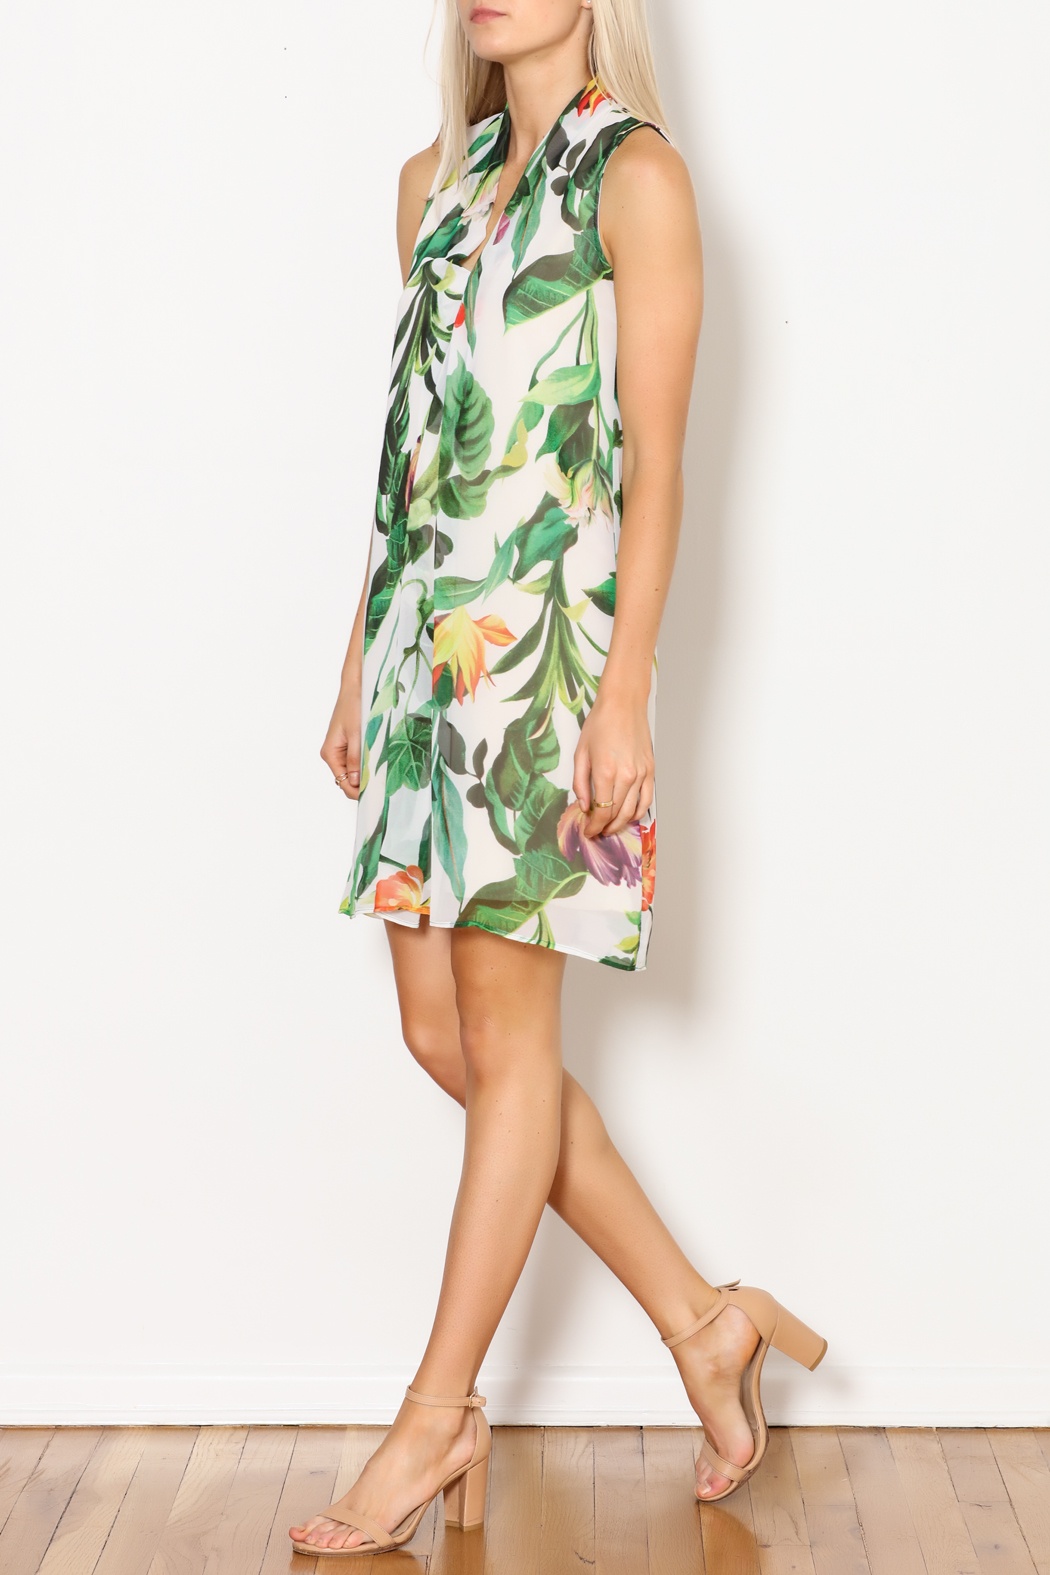 Kay Celine Tayah Multi-Colored Dress - Side Cropped Image